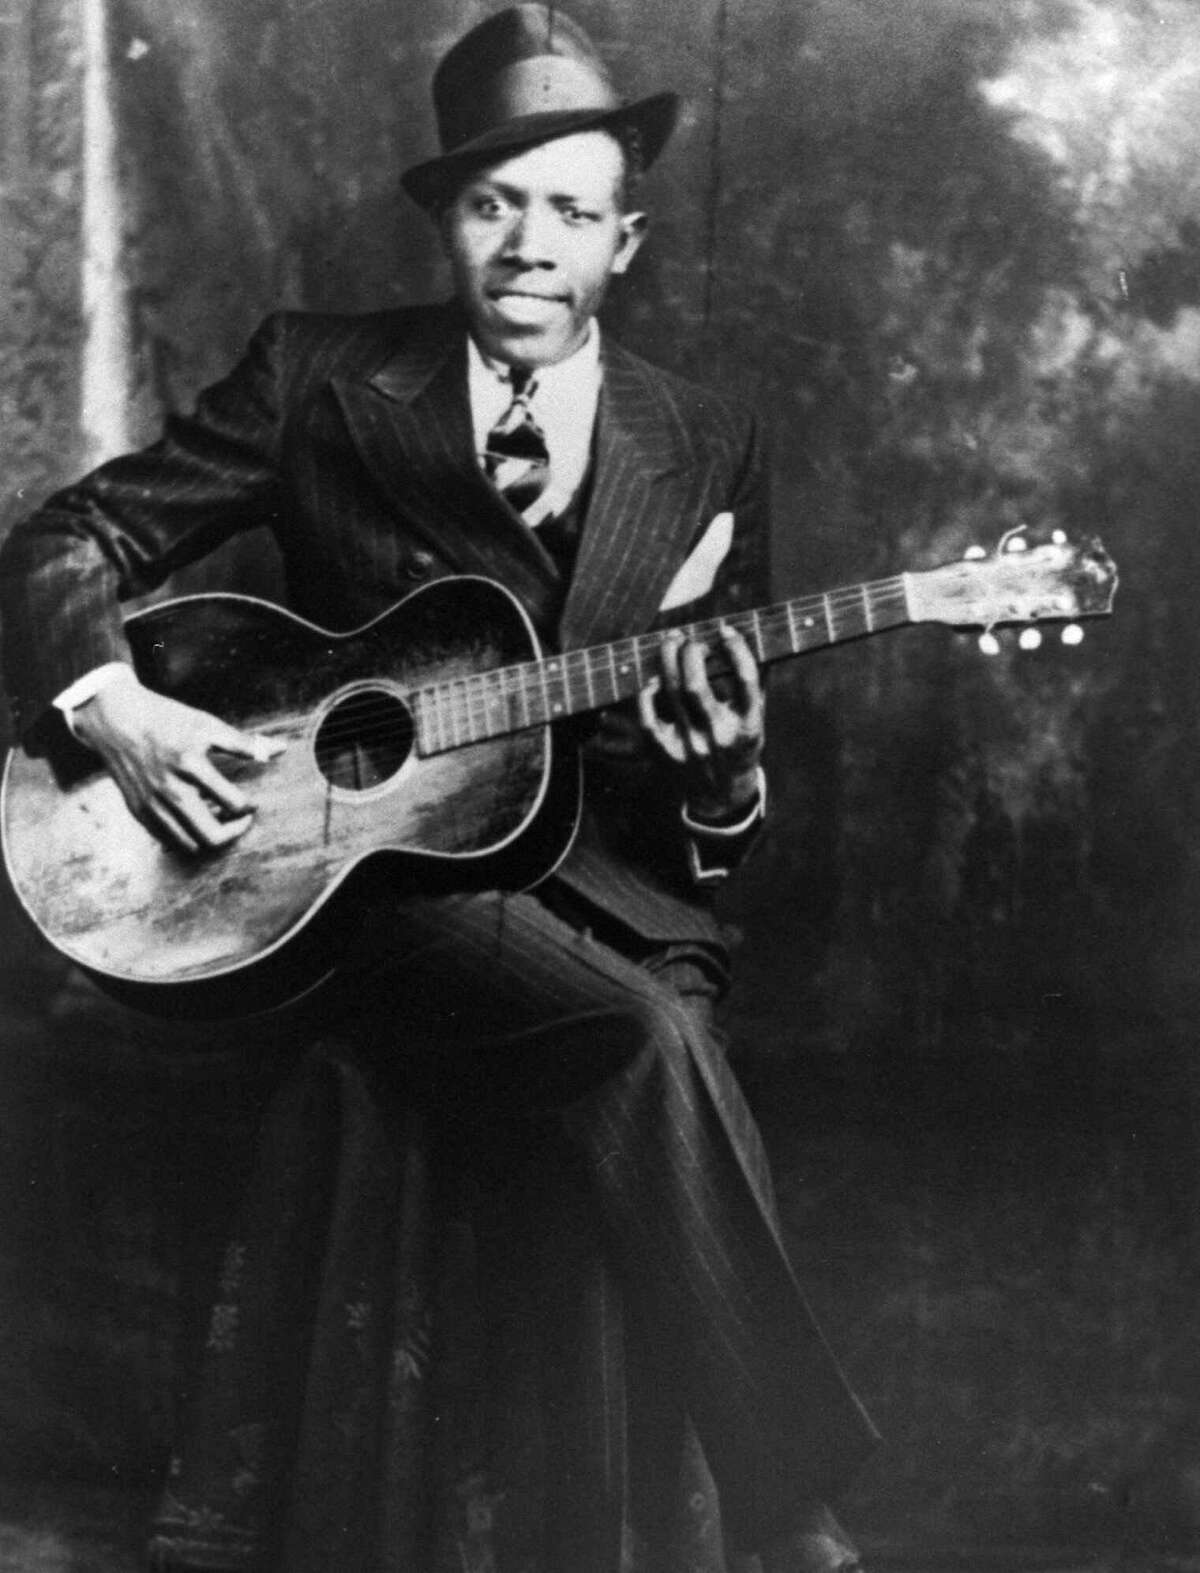 Blues guitarist and singer Robert Johnson in 1935 in Memphis, Tenn. This portrait taken in Memphis is one of only two photos of bluesman Robert Johnson known to exist.